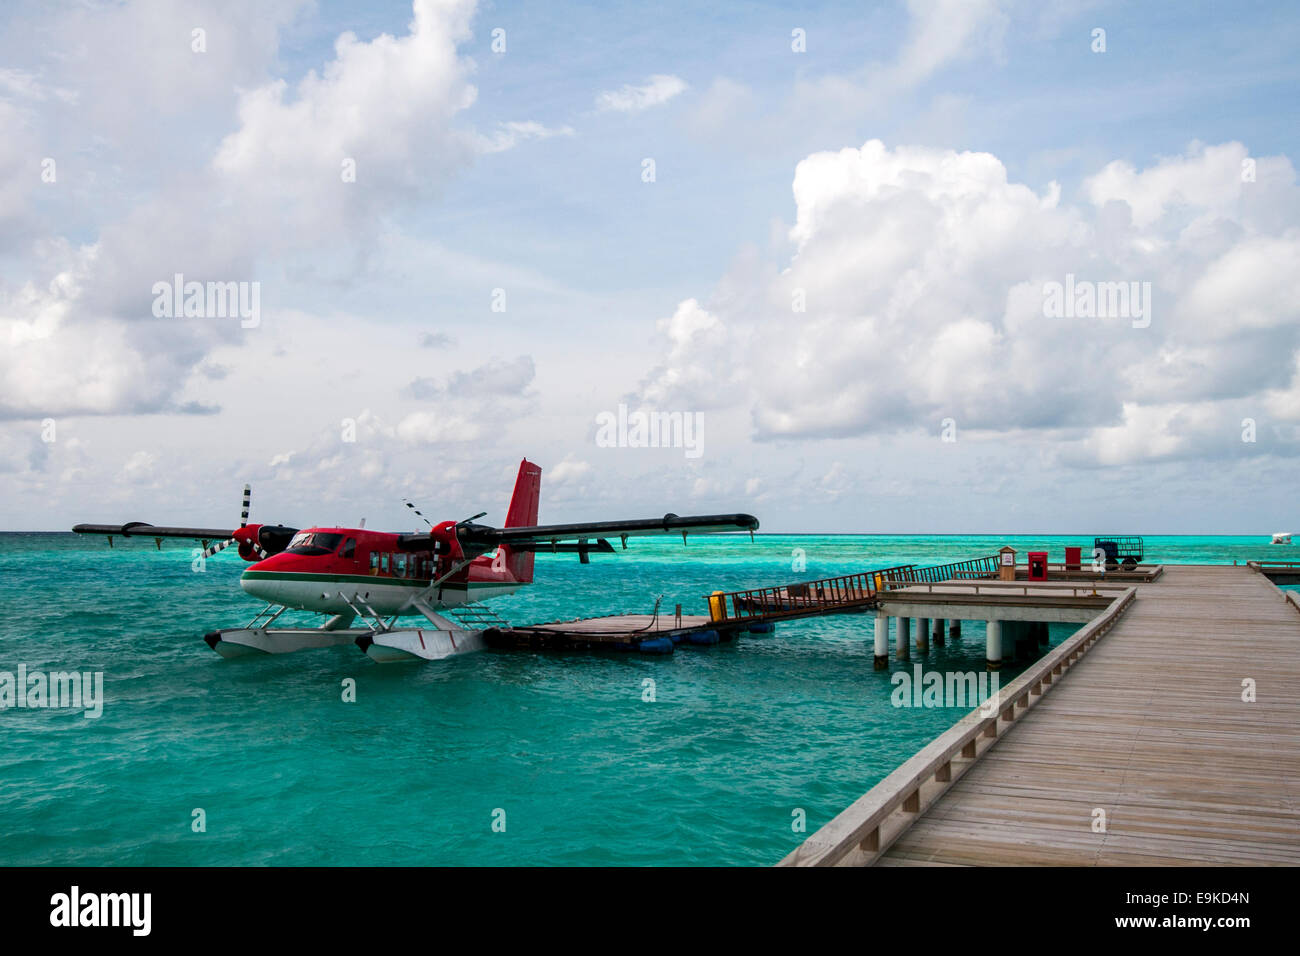 Sea plane docked at the arrival pier, Maldives. - Stock Image